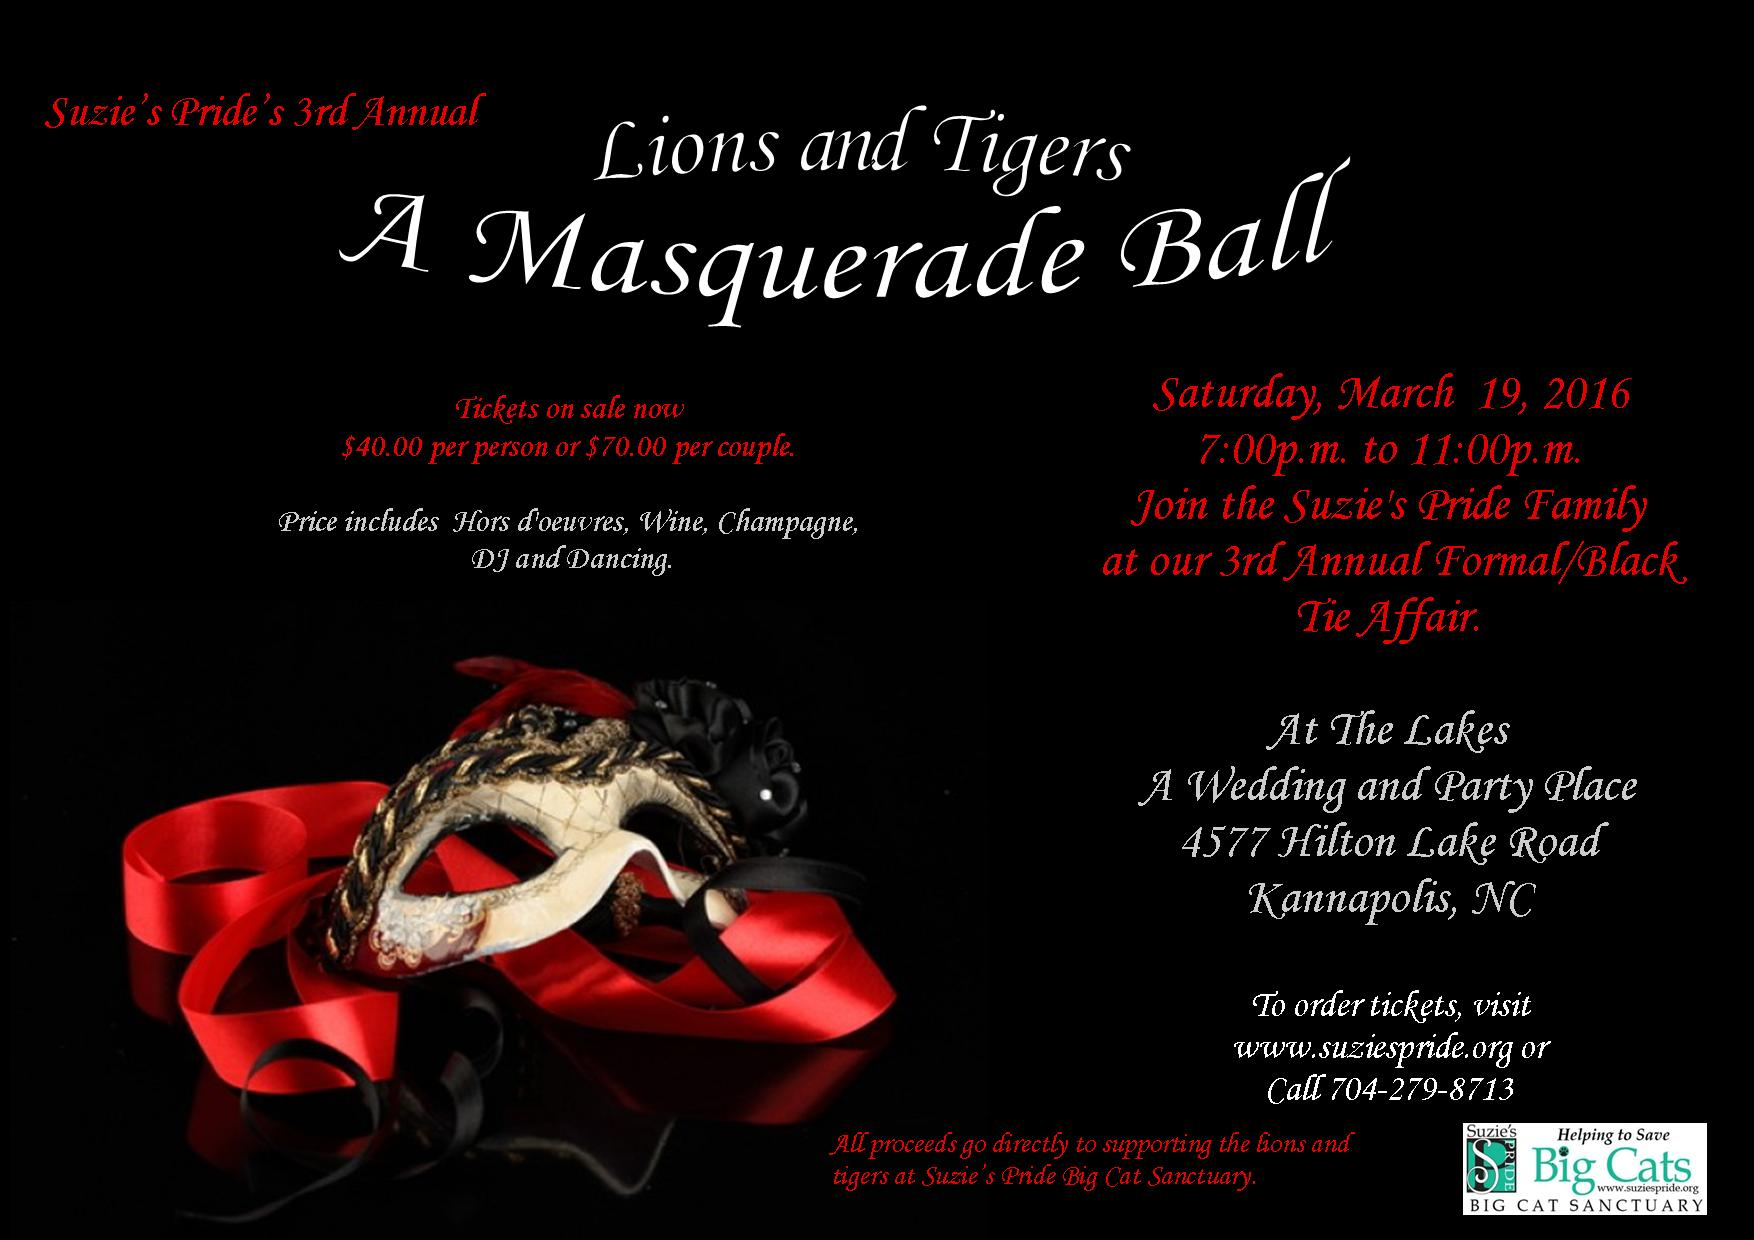 Lions and Tigers A Masquerade Ball 2016